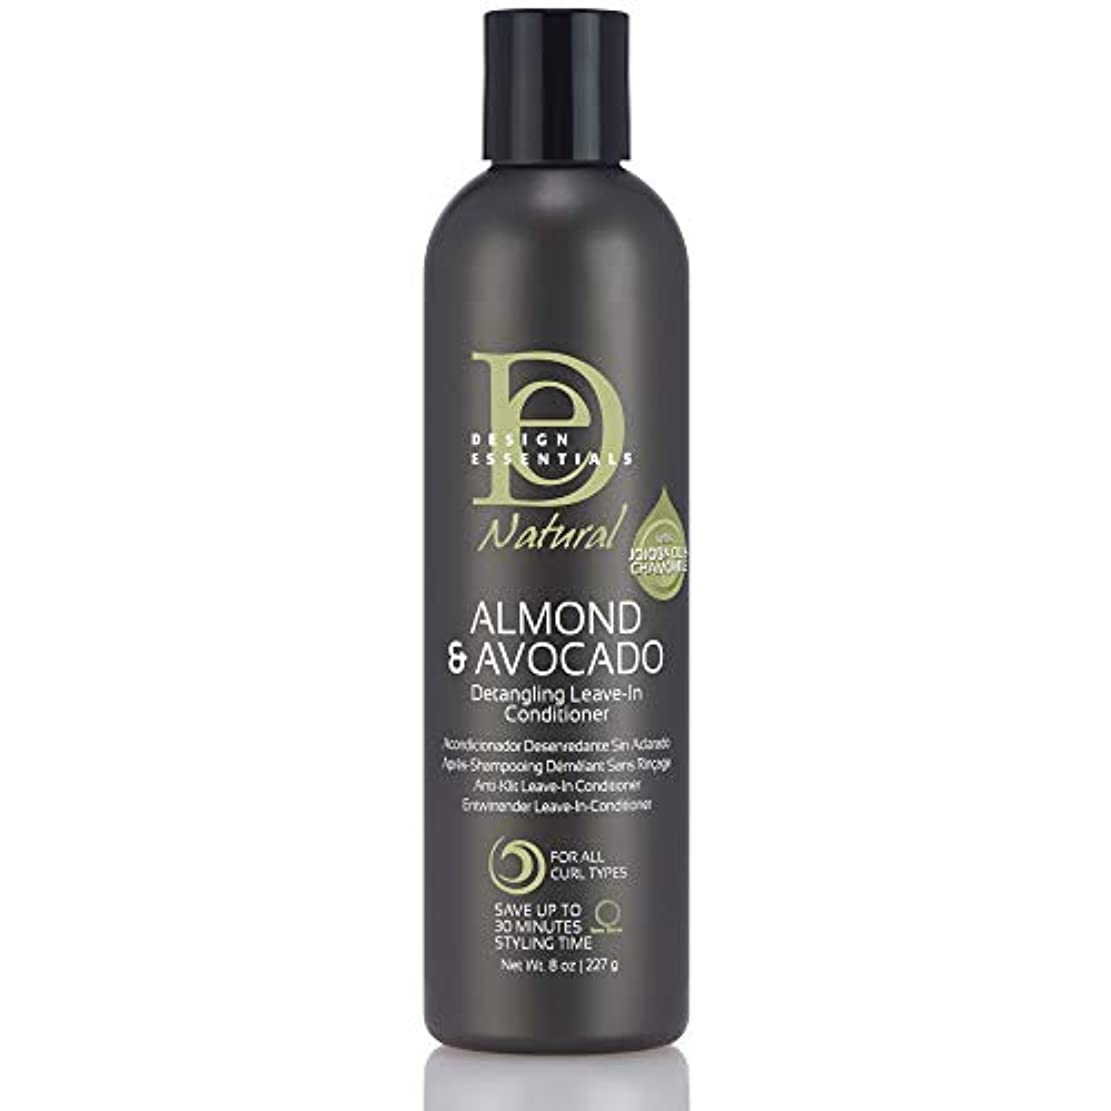 Design Essentials Natural Instant Detangling Leave-In Conditioner for Healthy, Moisturized, Luminous Frizz-Free...